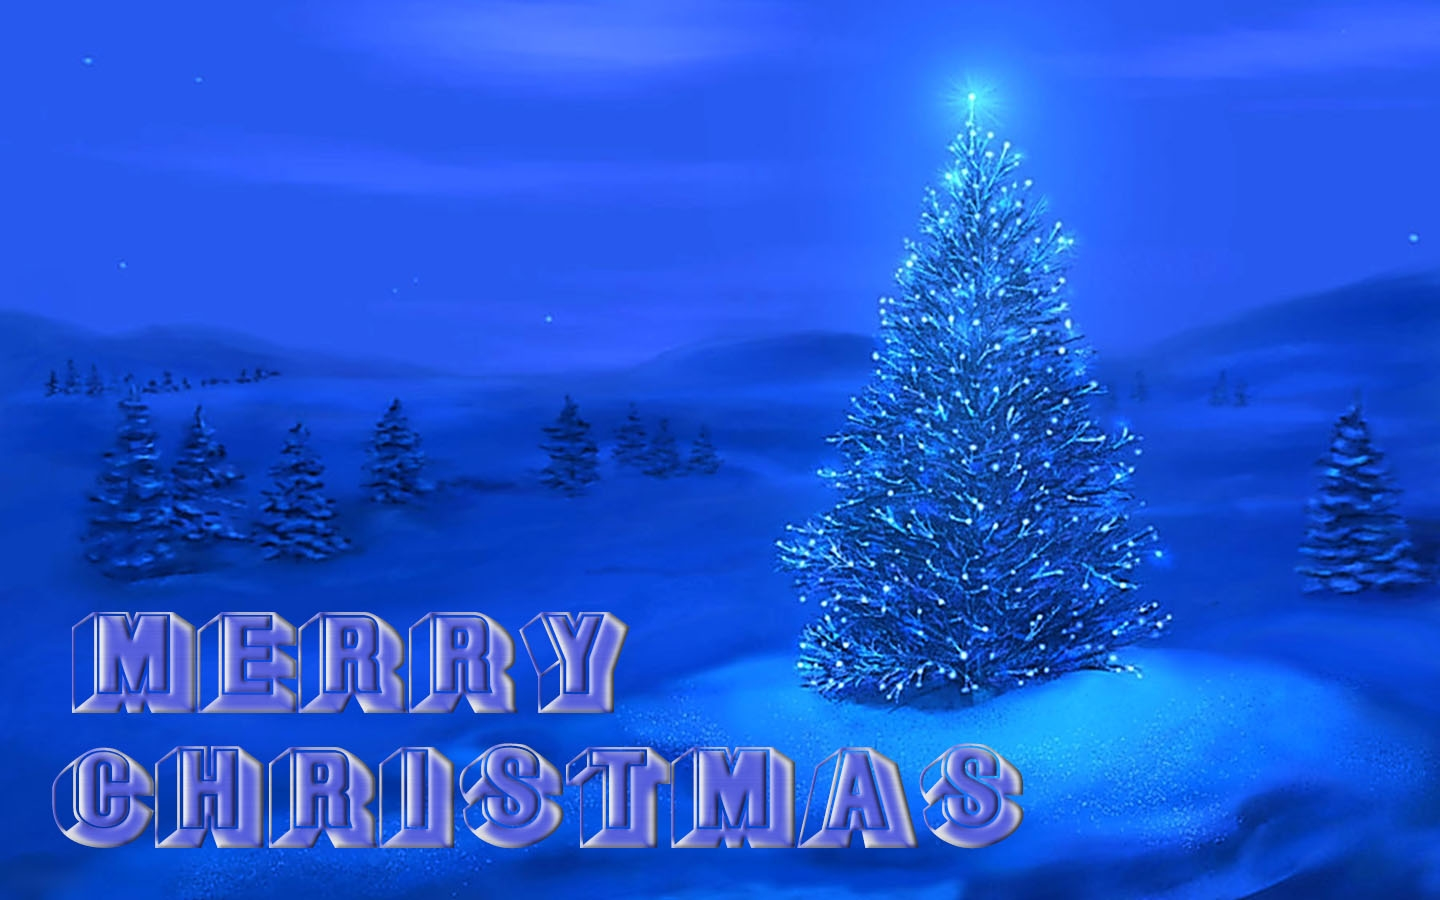 wallpaper proslut: Christmas Holidays Photo Greetings ...